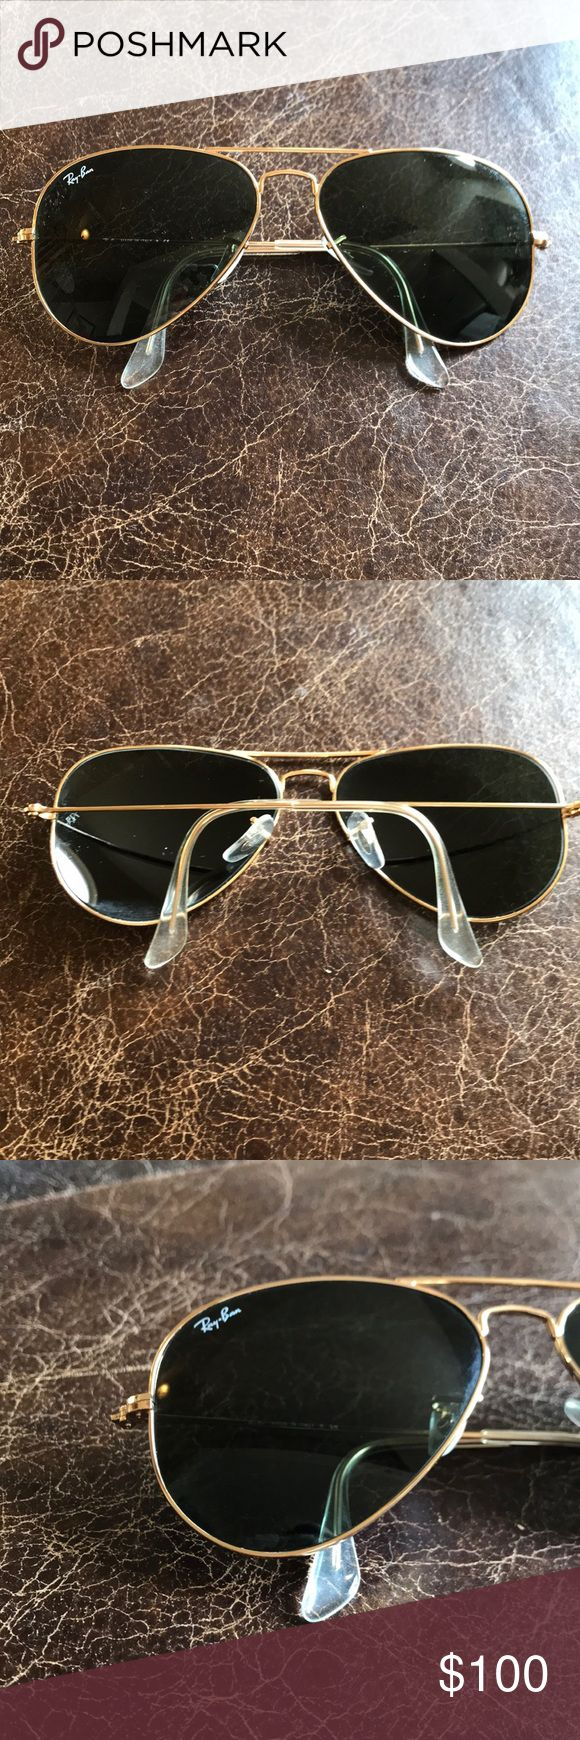 Ray Bans Original Aviator- perfect condition Ray Bans worn 2-3 times. Given as a gift. No scratches on frames. Excellent condition  Left arm reads: RB 3025 Aviator Large Metal L0205 58D14 3N Right arm reads: Made in Italy Ray-Ban Accessories Sunglasses